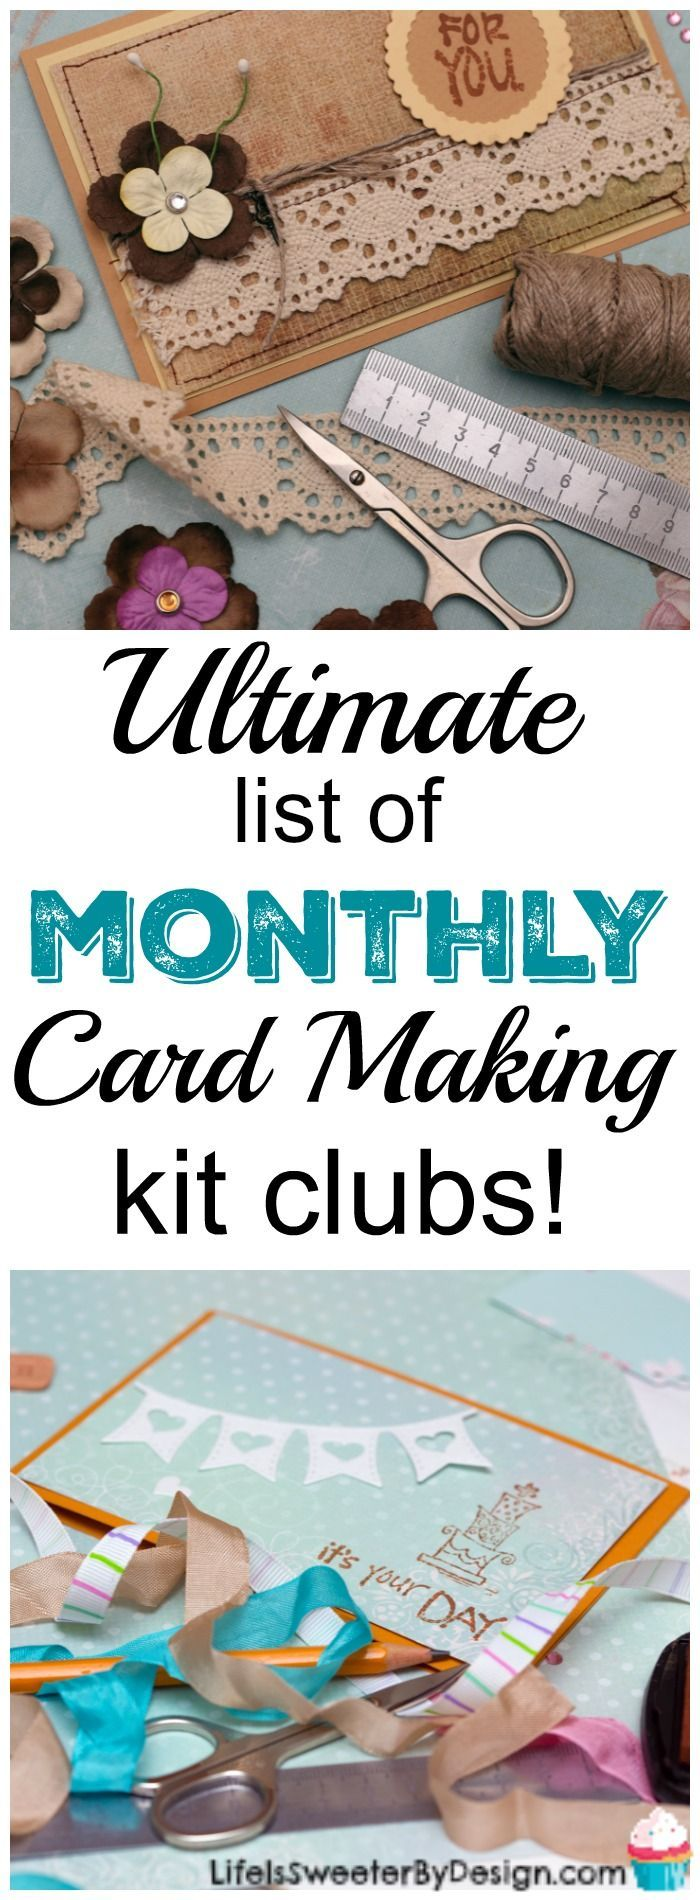 Ultimate List Of Monthly Card Making Kit Clubs Available For Paper Crafters These Monthly Card Making Kits Are Aw Card Making Kits Card Craft Kits Card Making